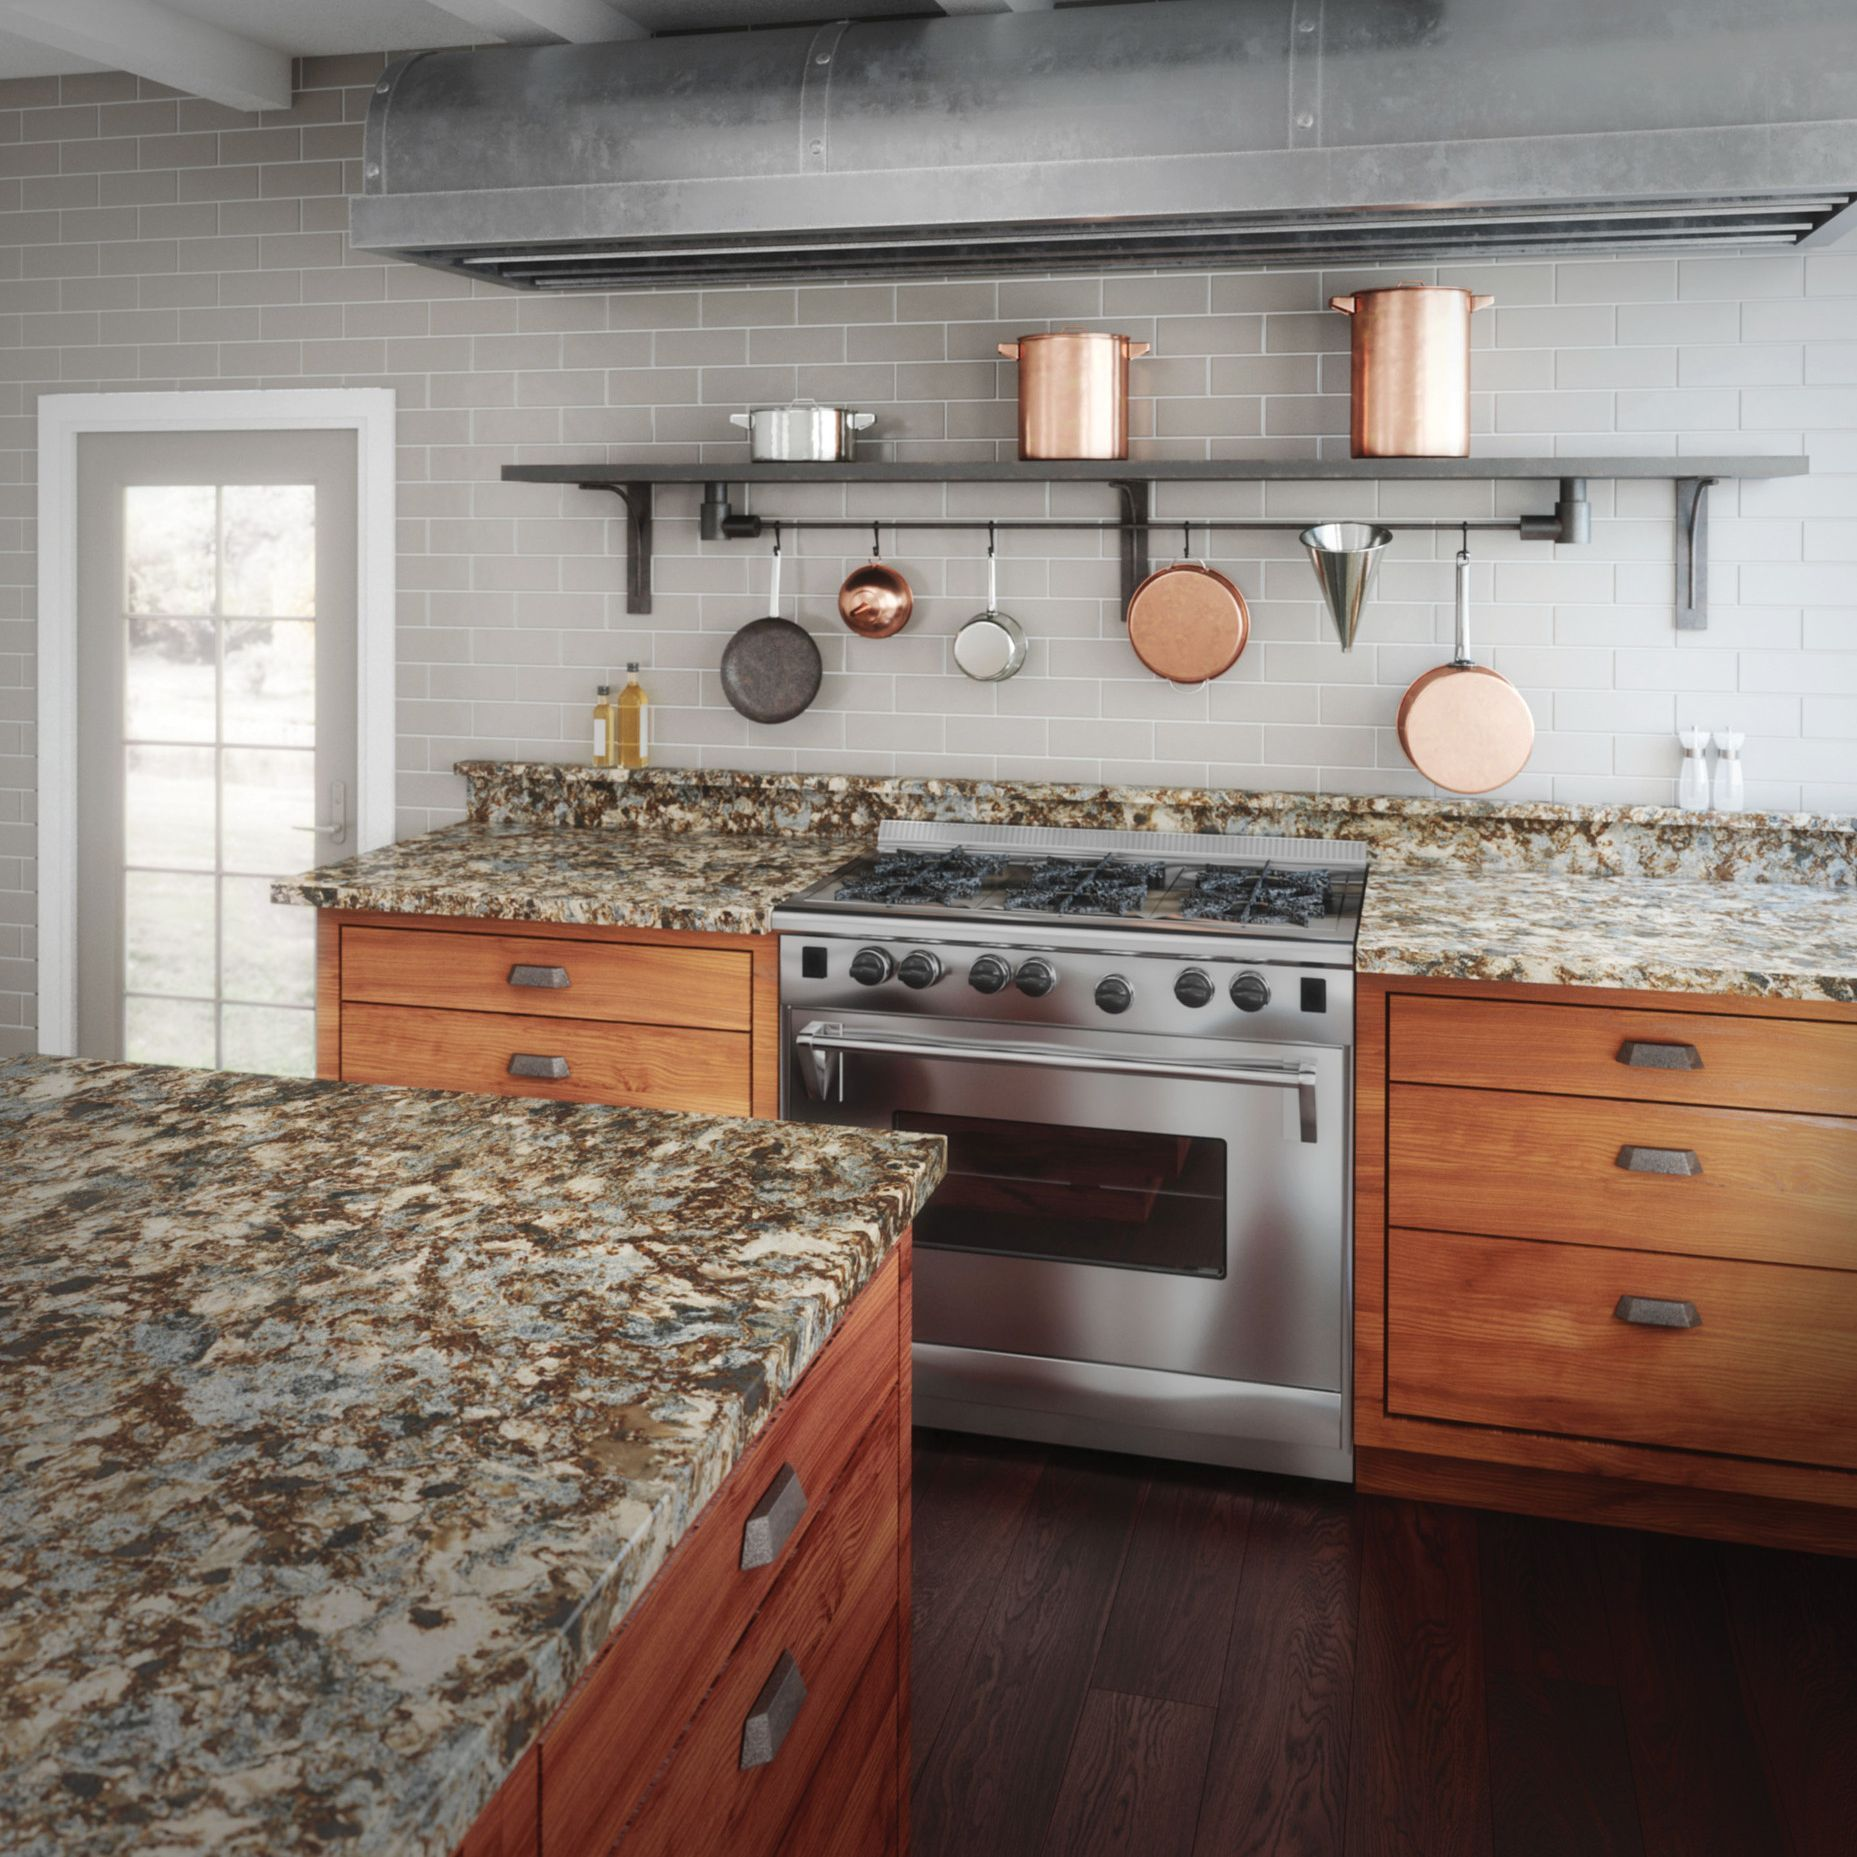 New Designs Cabinets And Countertops Countertops Kitchen Countertops